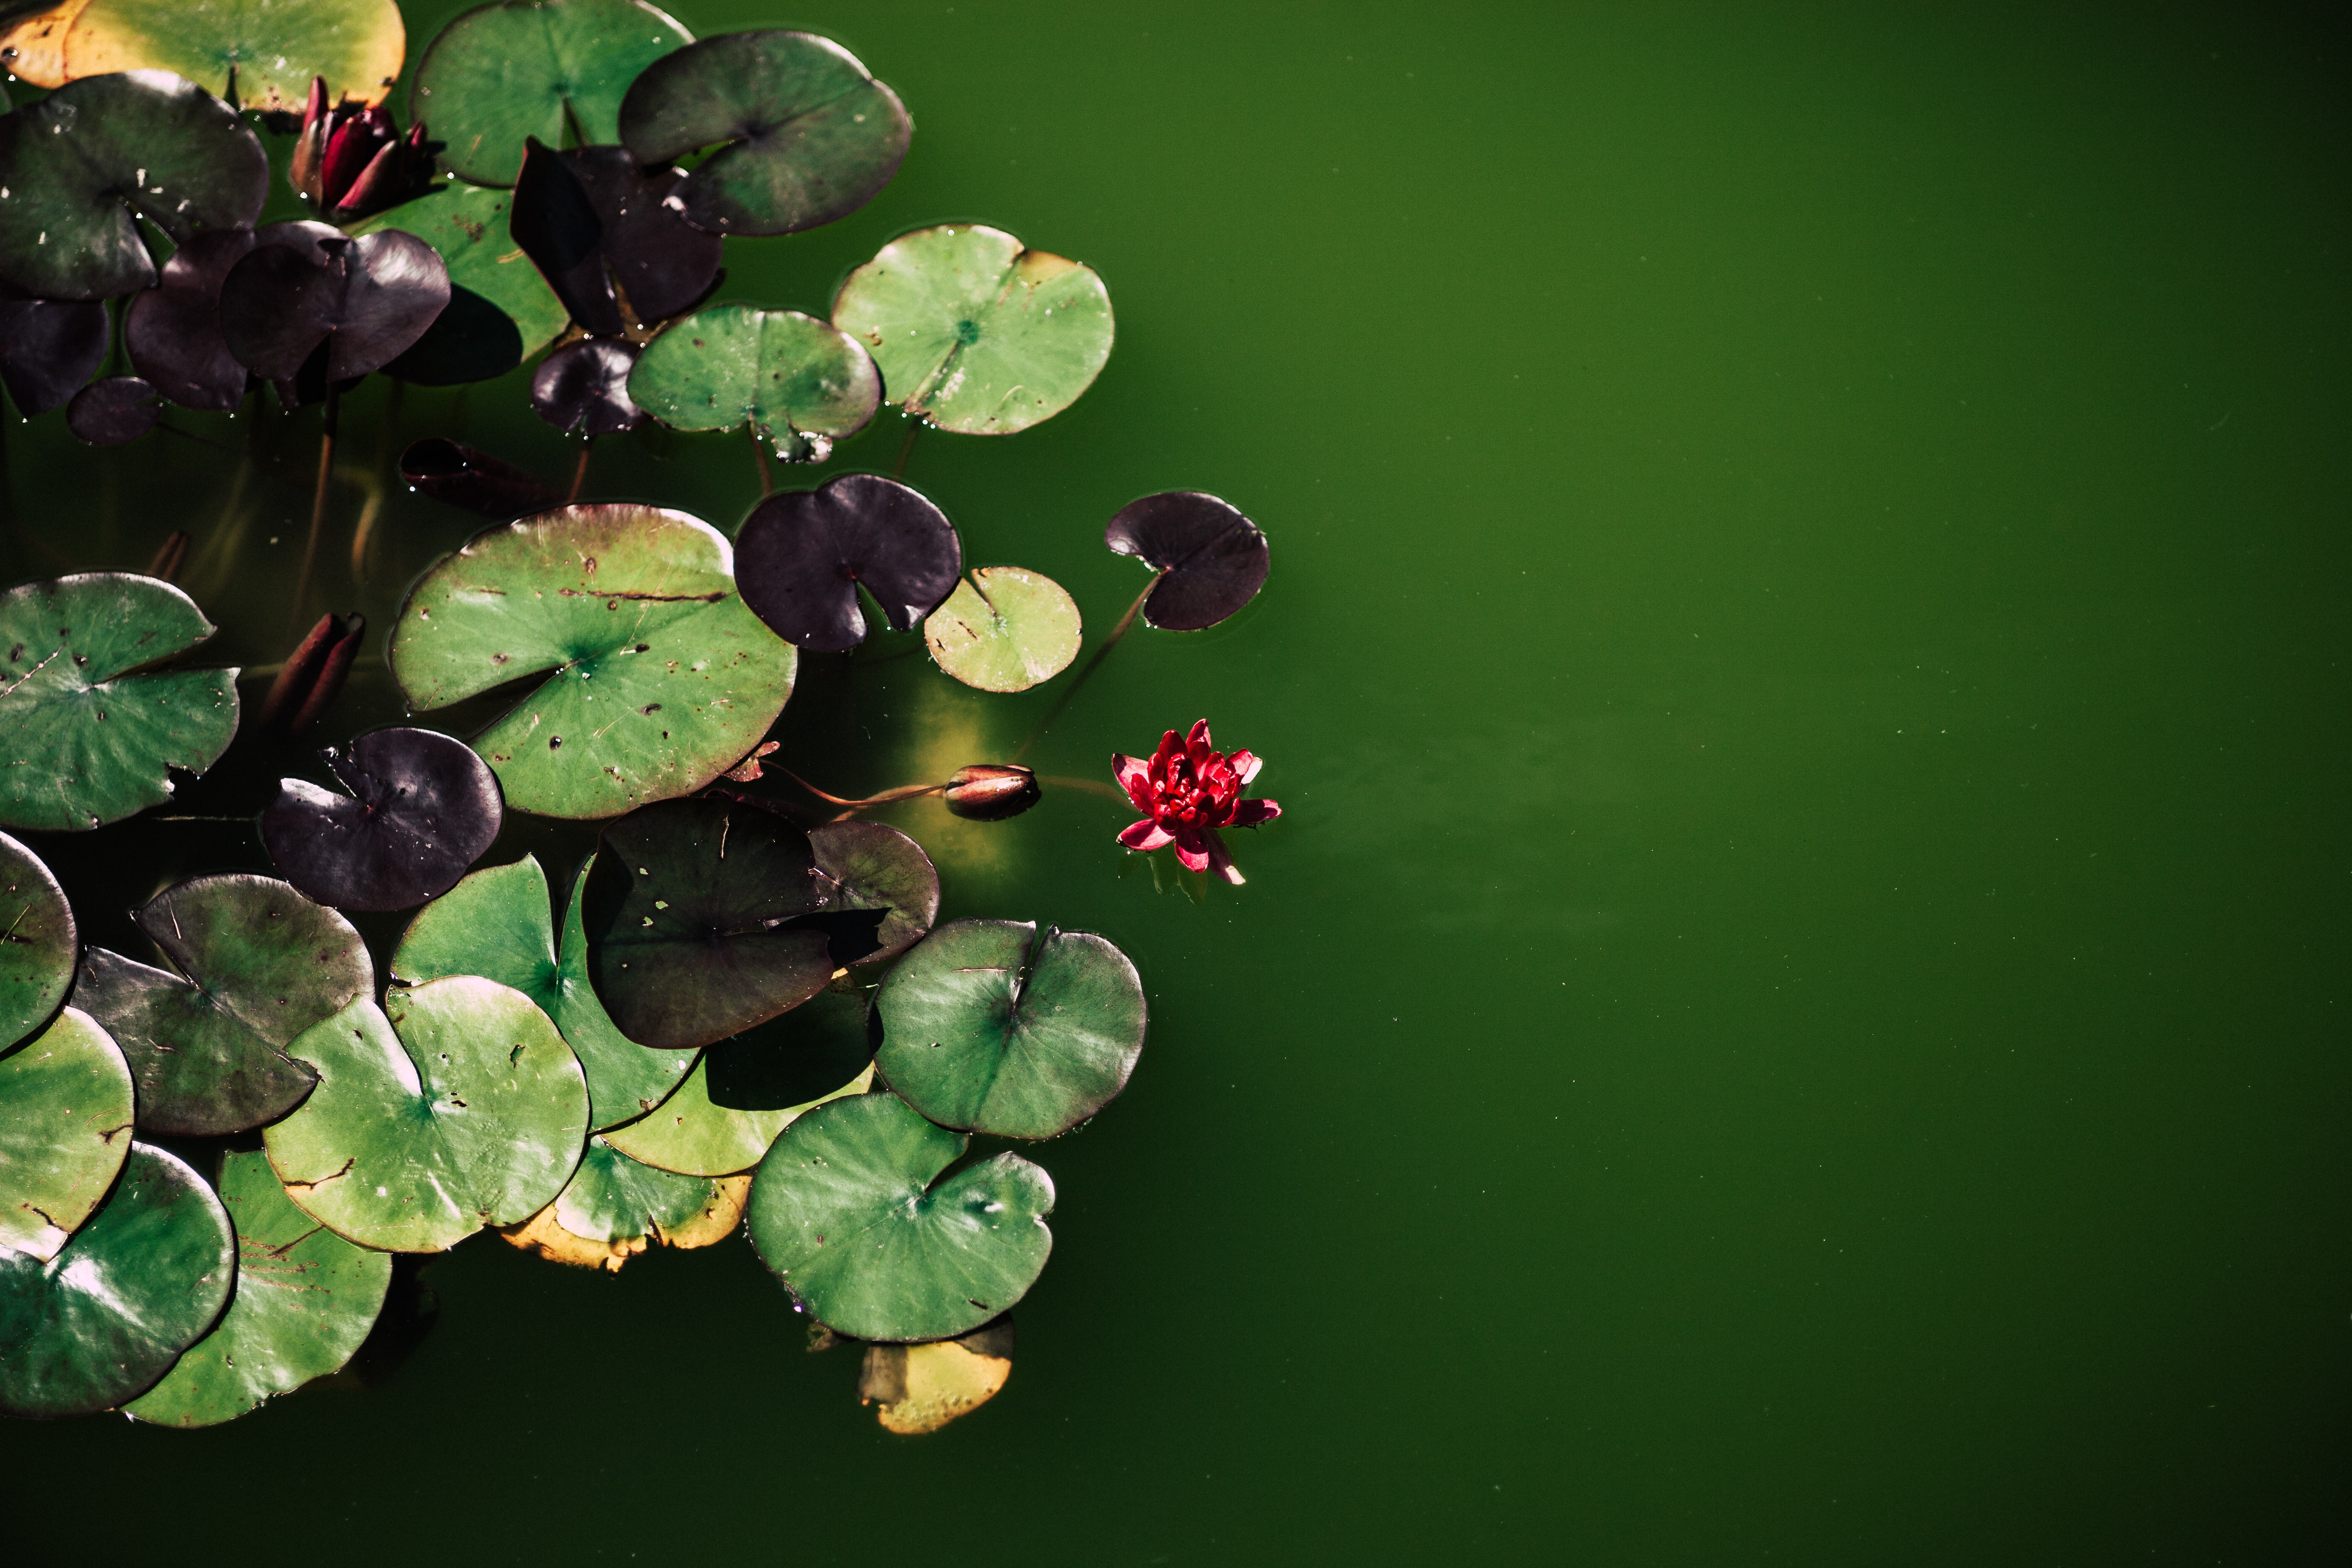 Green and purple lily pads float in calm green water